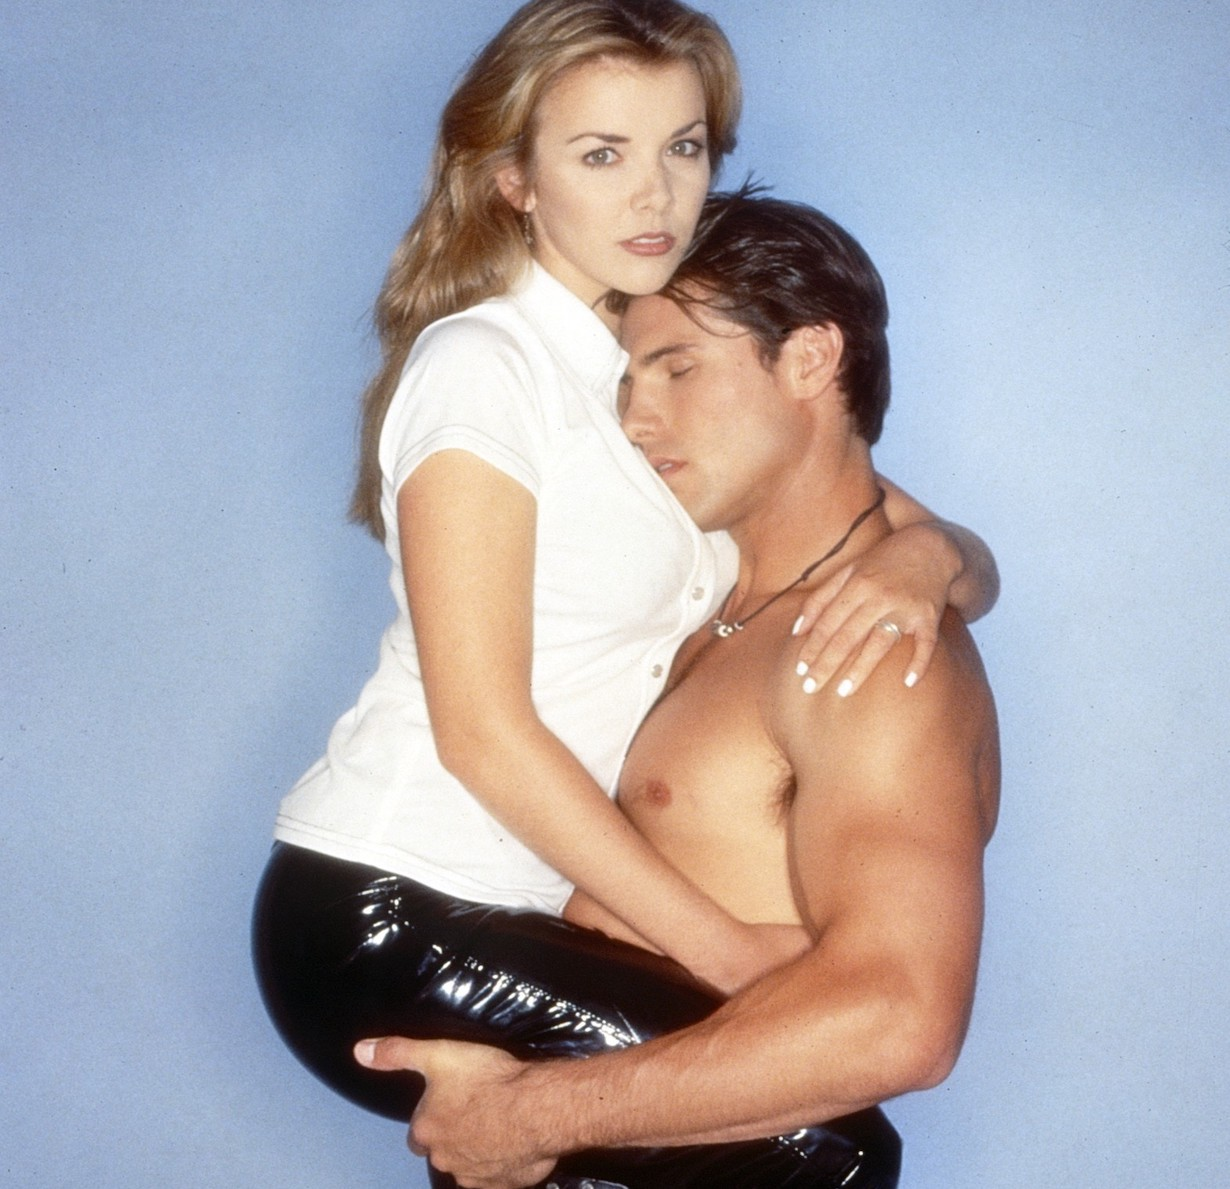 DAYS OF OUR LIVES, from left: Christie Clark, Austin Peck, carrie